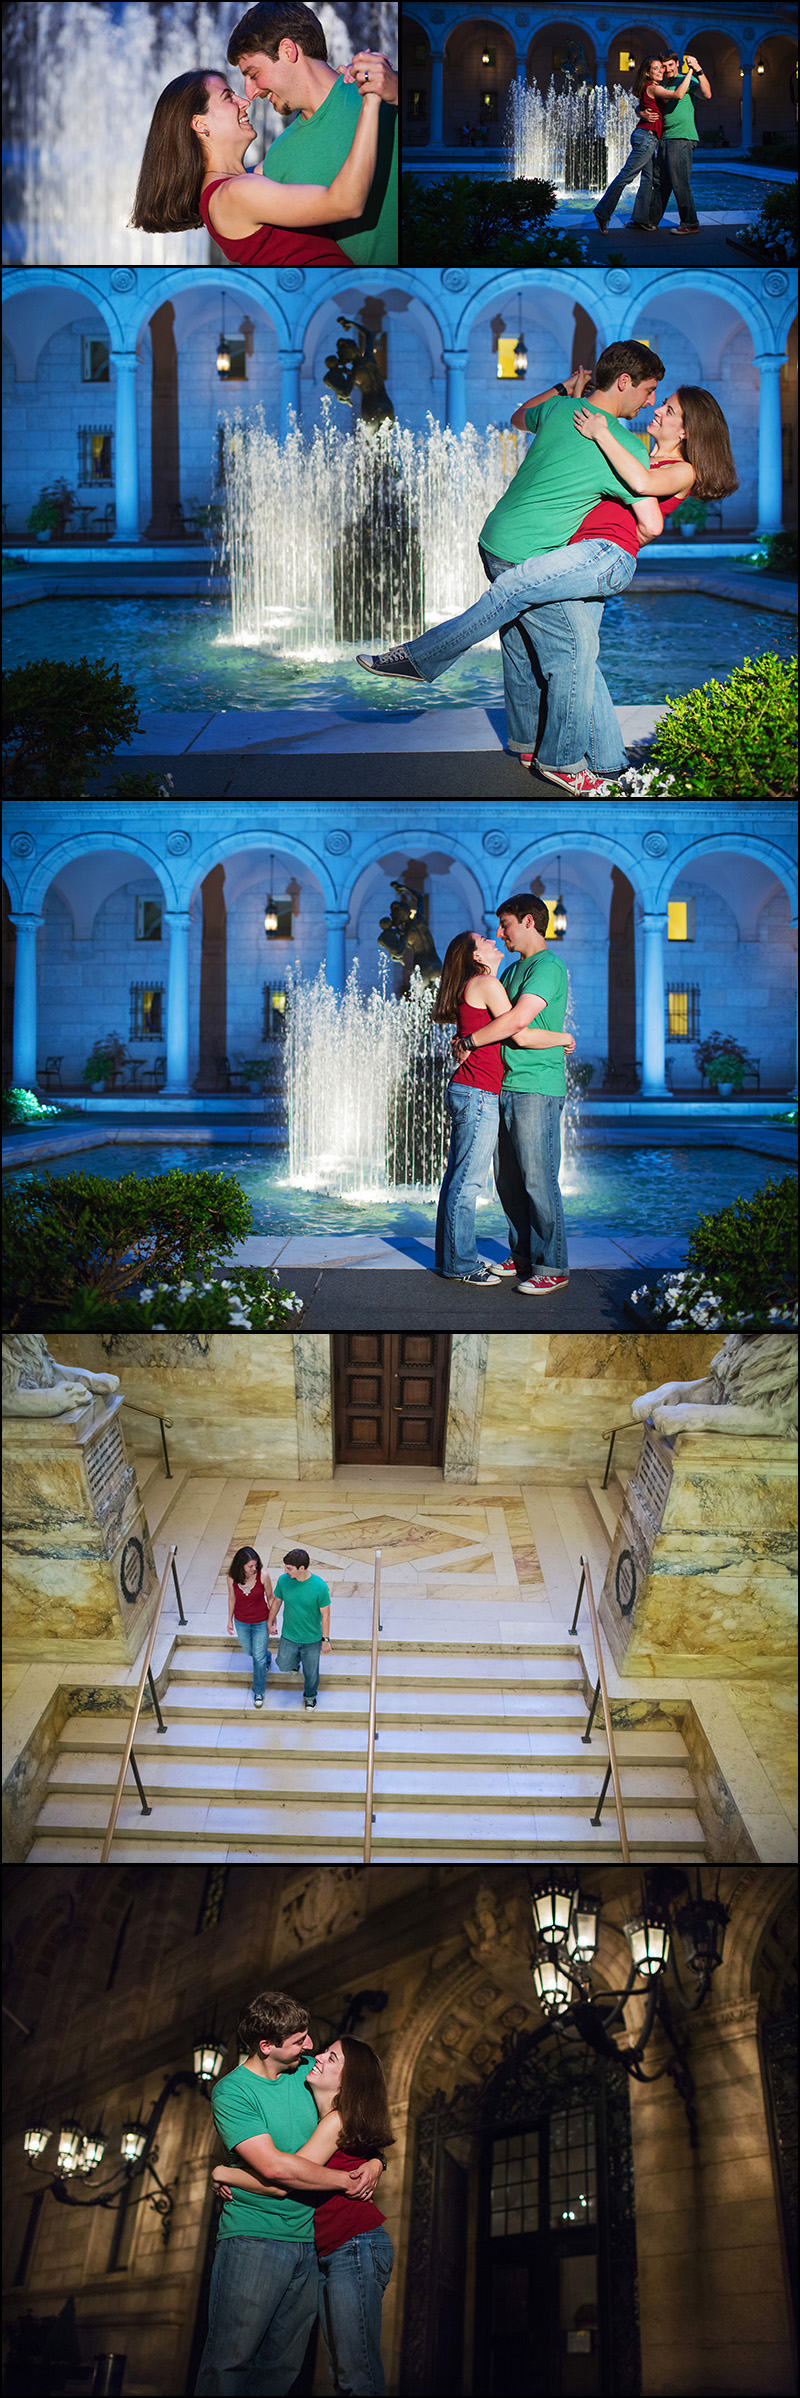 BOSTON PUBLIC LIBRARY ENGAGEMENT SHOOT PHOTOS